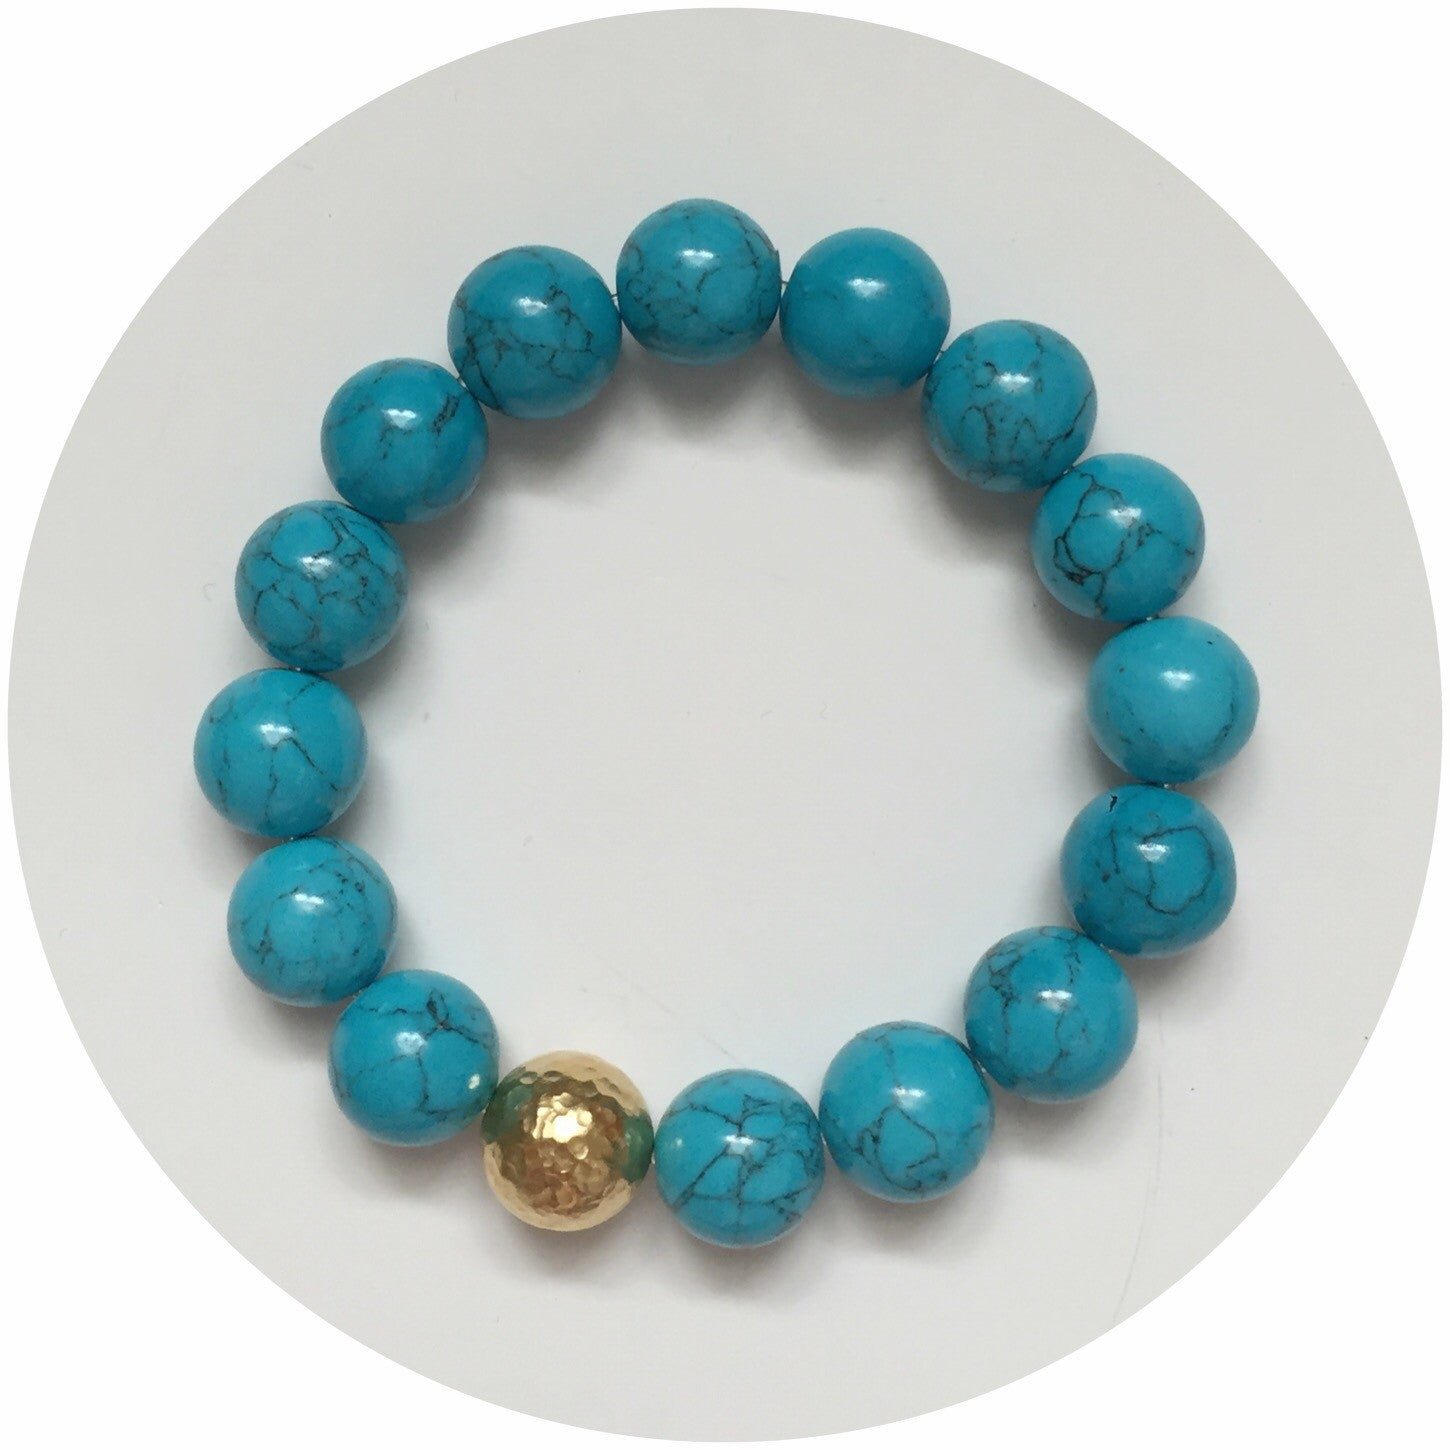 Blue Howlite with Gold Hammered Accent - Oriana Lamarca LLC